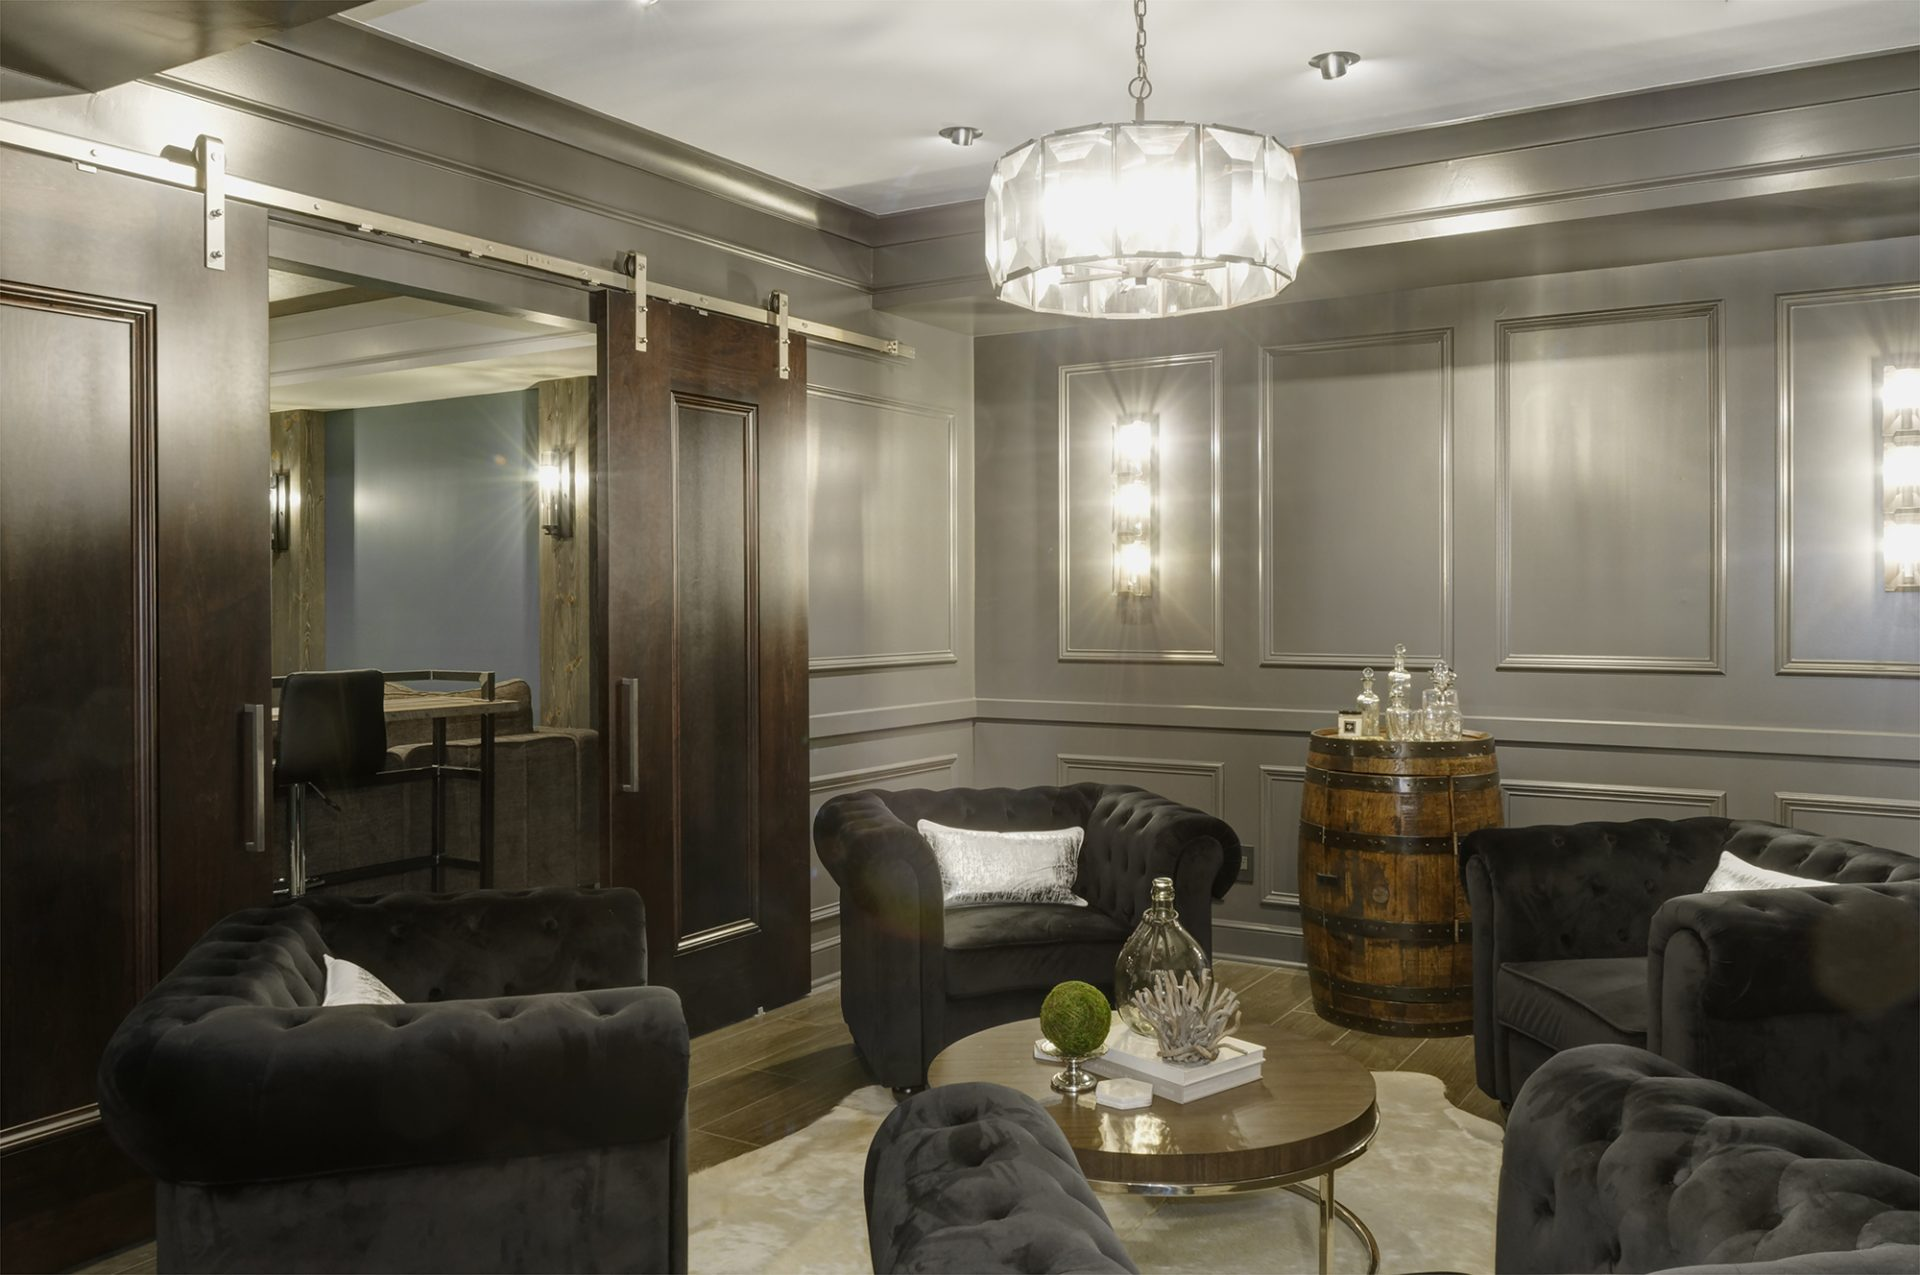 Basement, New Albany, Dave Fox, Remodel, bourbon lounge,wainscoting, trim